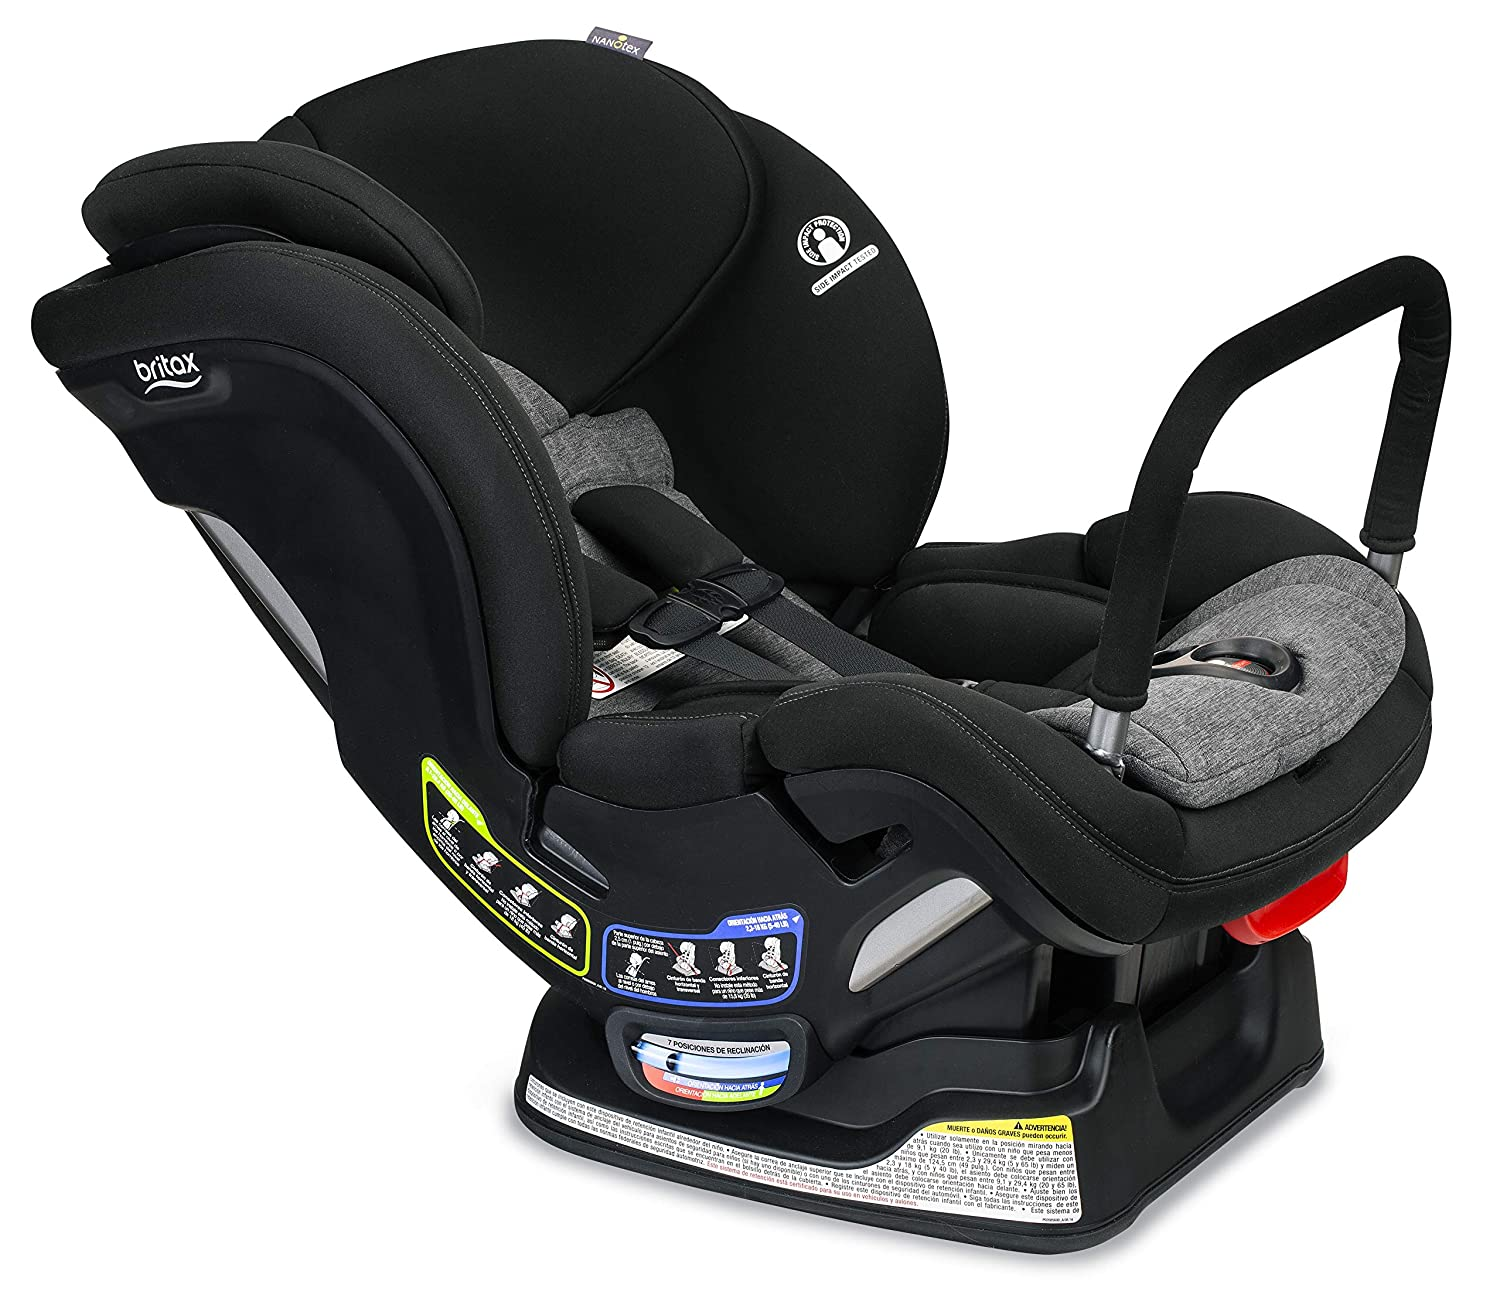 Top 15 Best Car Seats For Small Cars 2020 Reviews Buying Guide